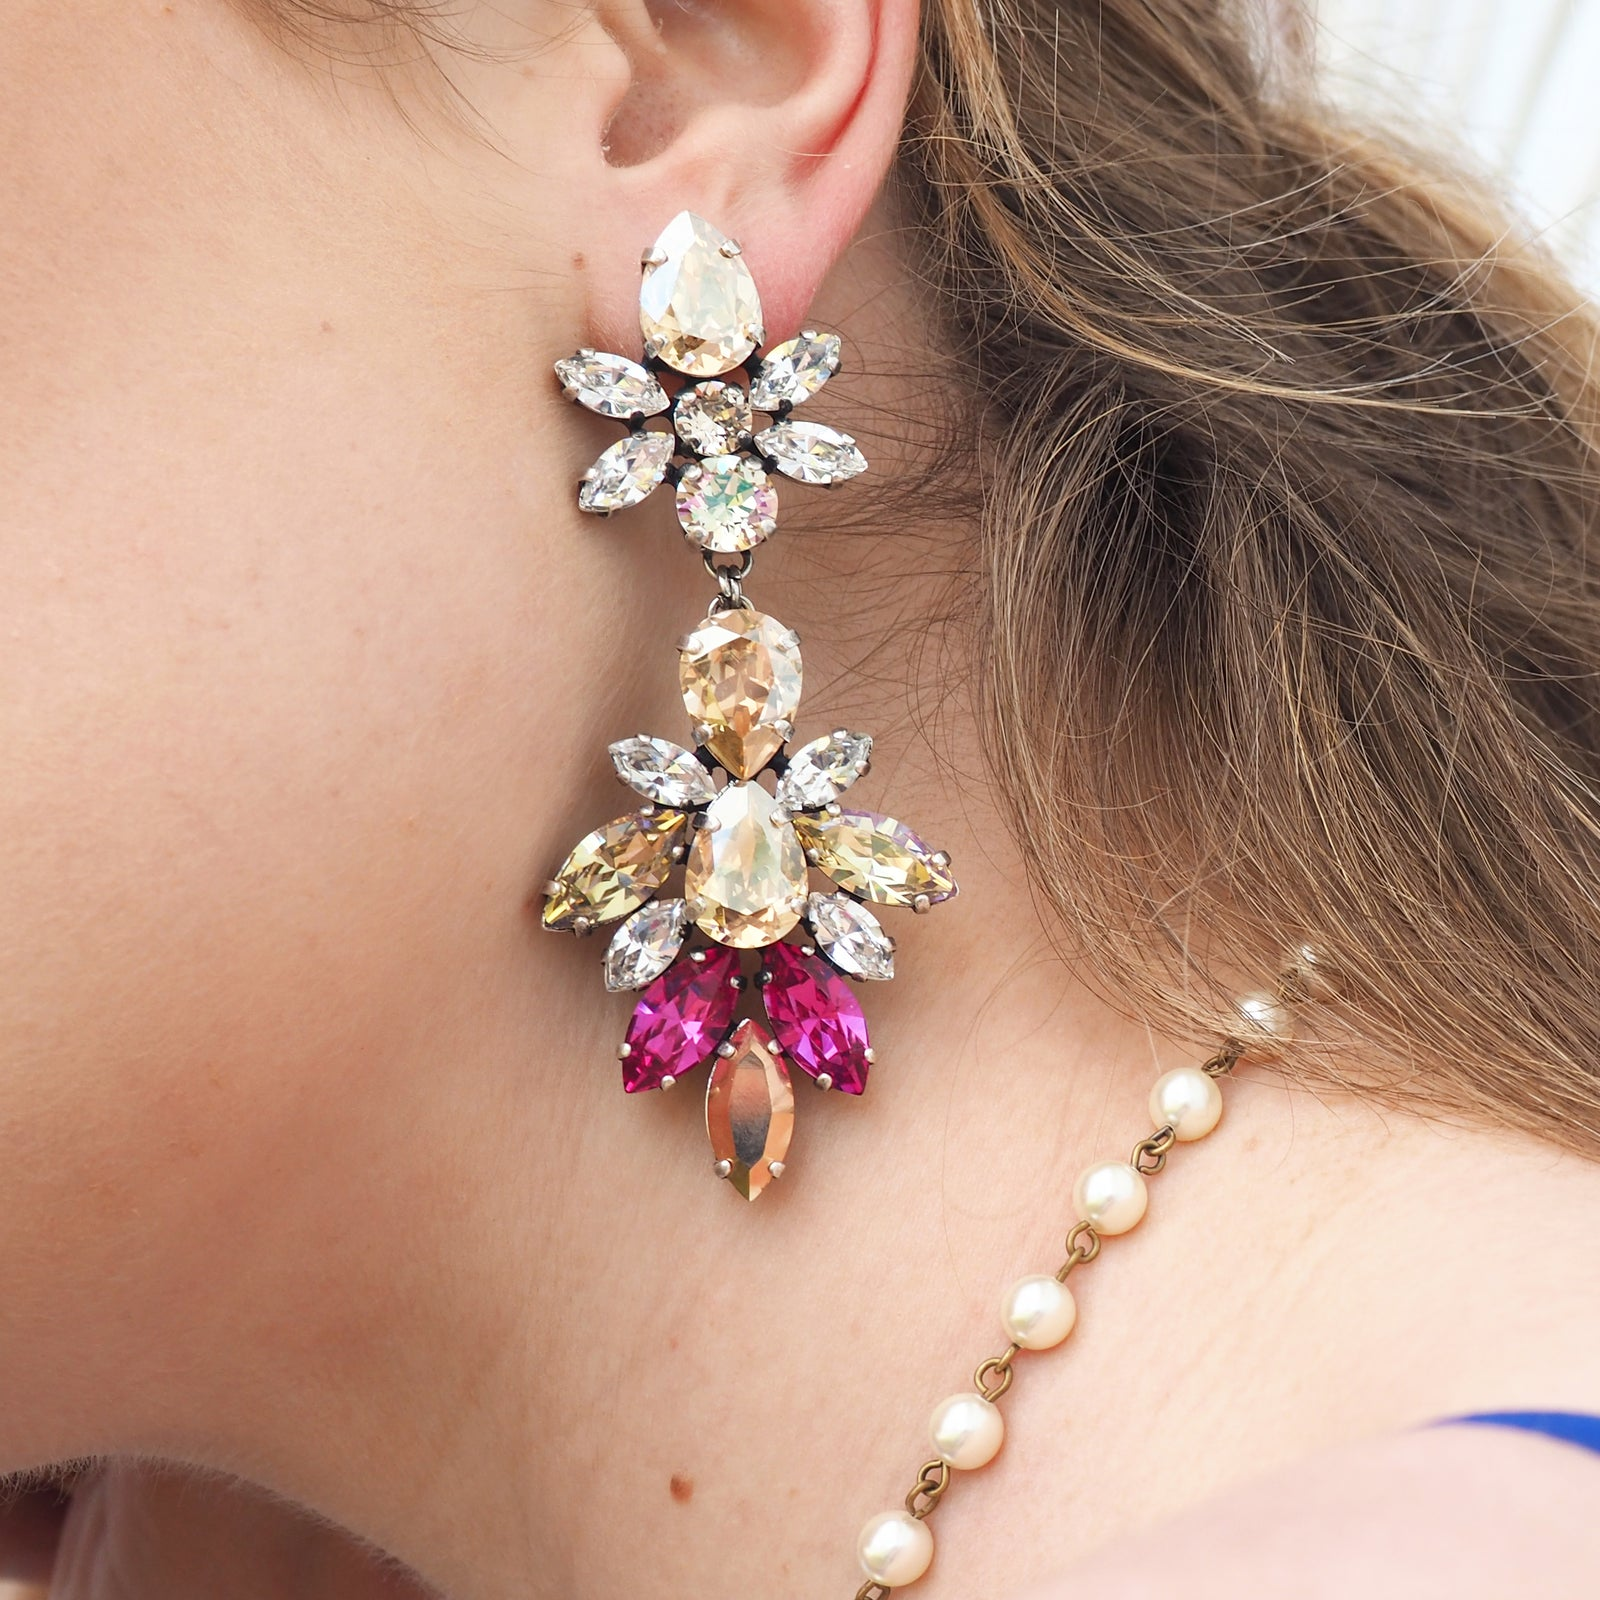 Falling Stars Earrings - Fuschia